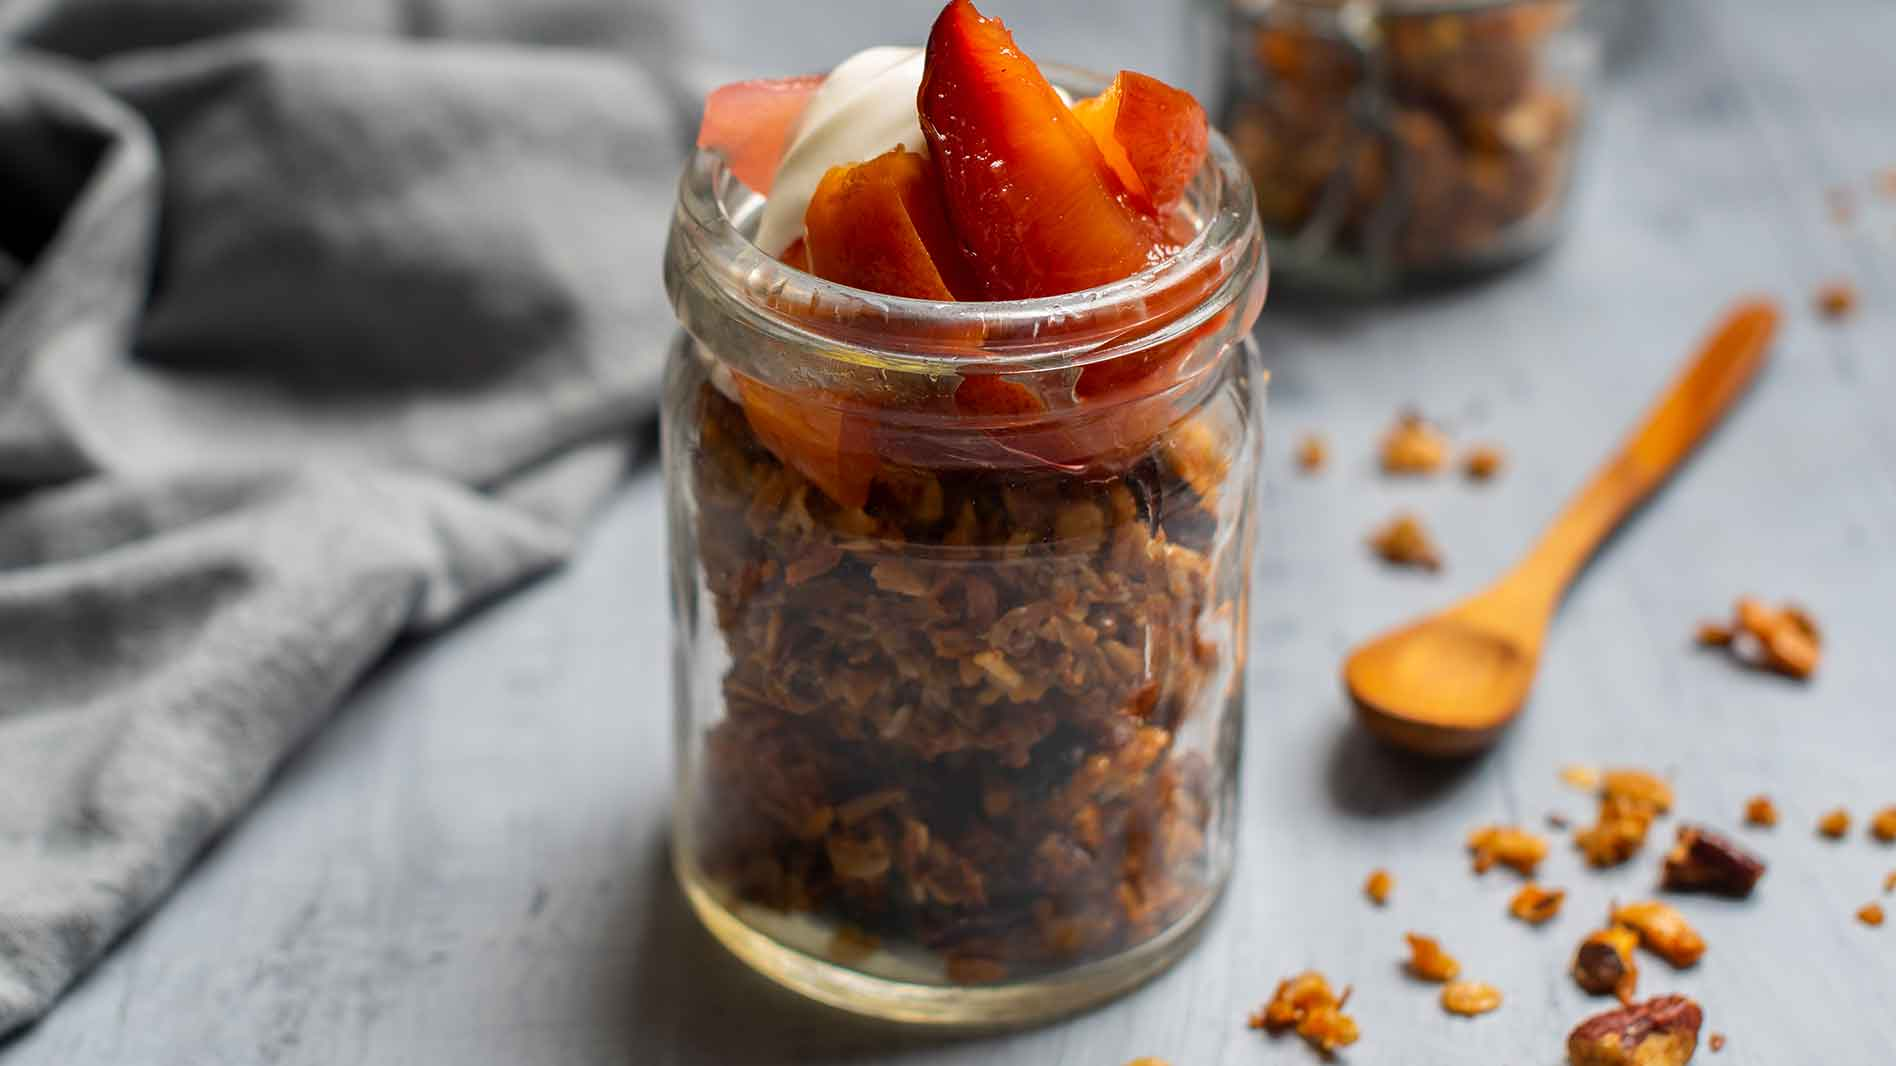 Homemade honey granola with poached fruits